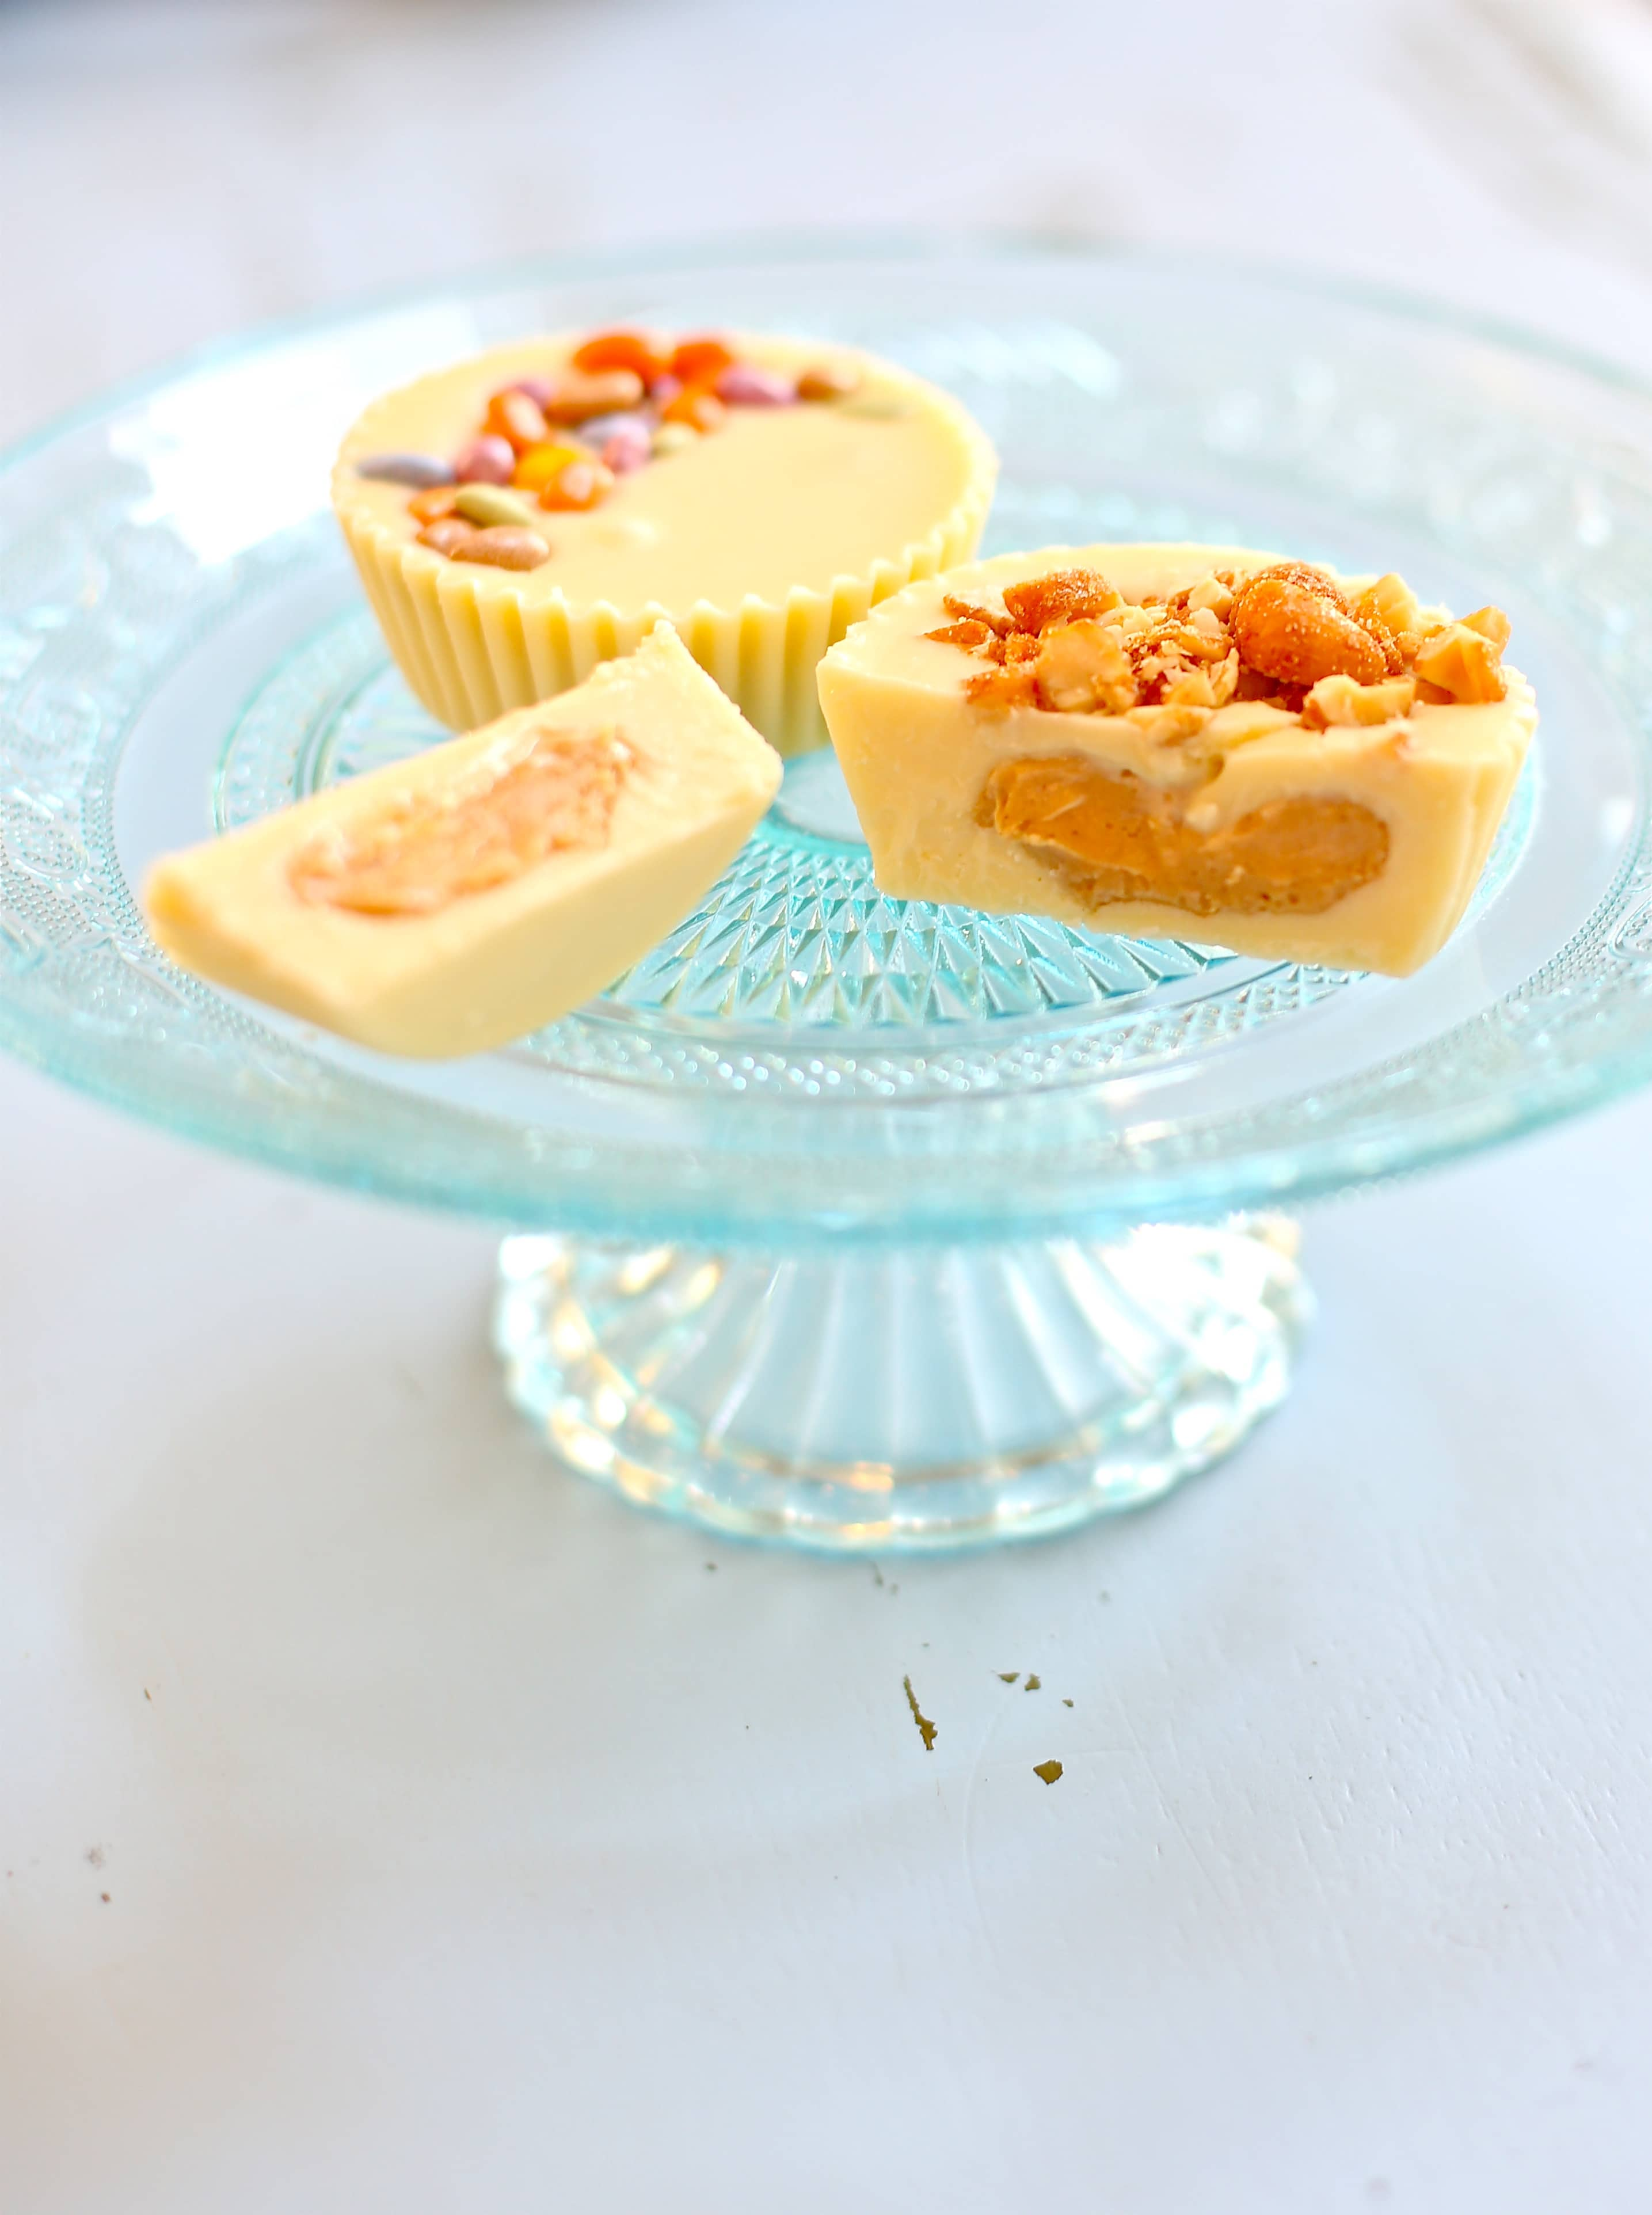 Two white chocolate peanut butter cups with candied and peanut topping served on a blue glass plate